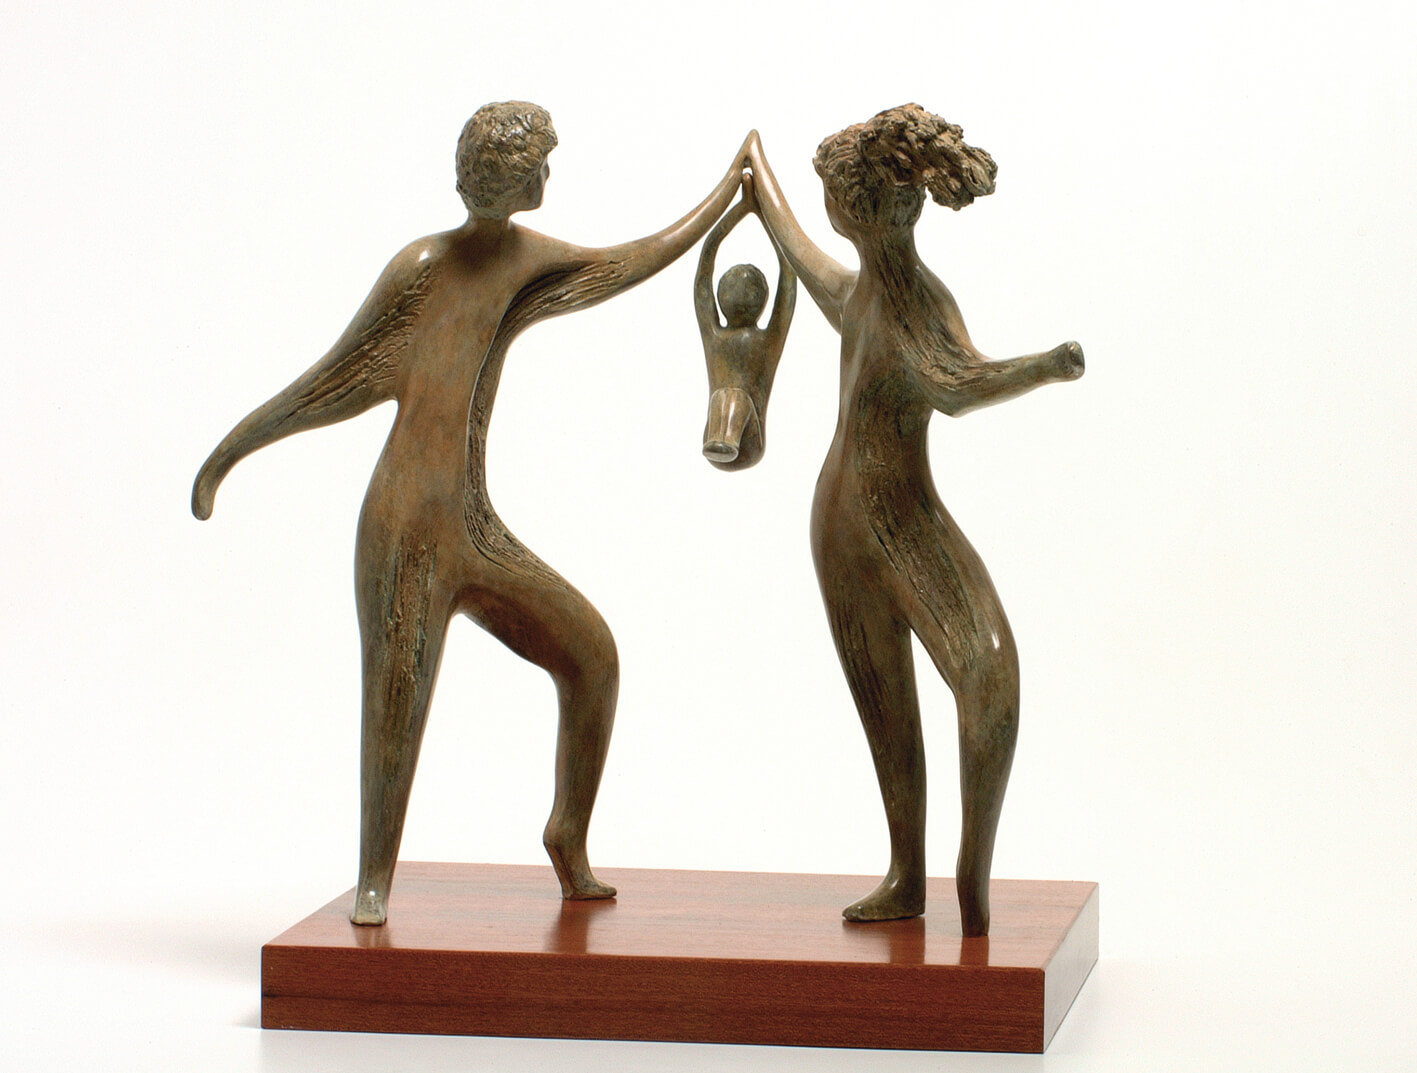 31. A Moment of Joy  | Bronze | 50x35 cm. 20x14 in.